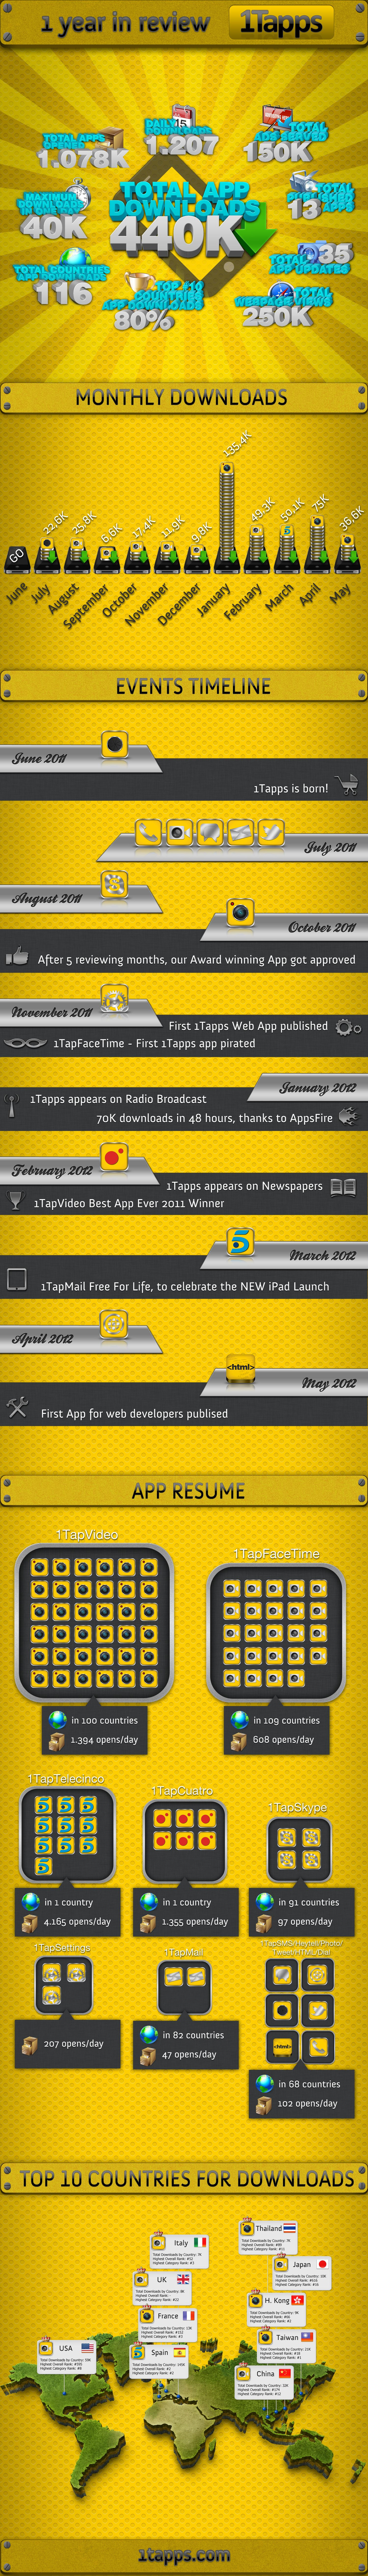 1Tapps First Aniversay in Review Infographic